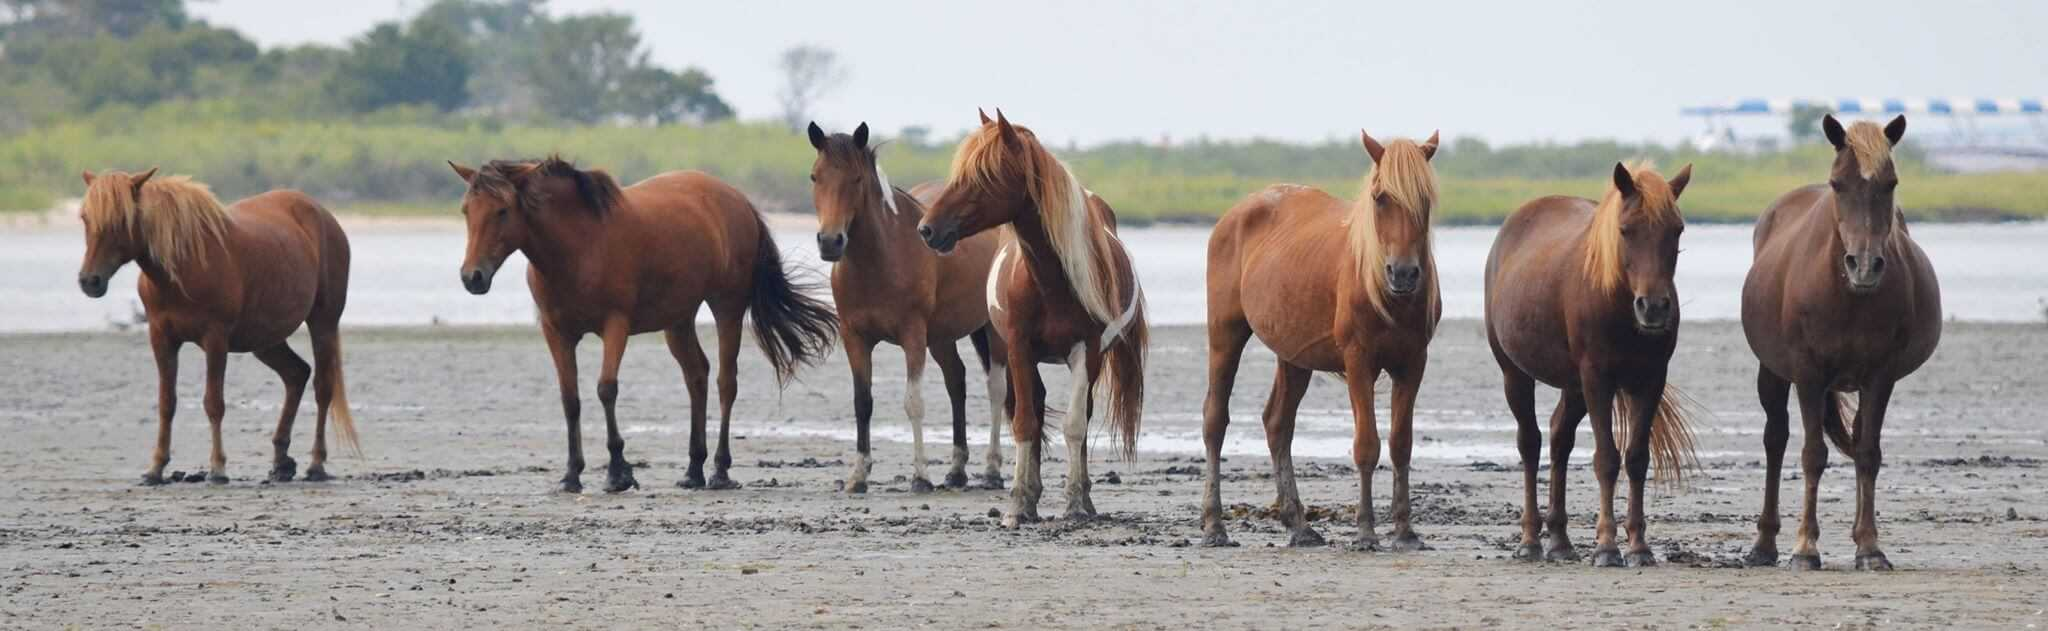 Image: From left - M2EINR-B (Rohan), N2BHS-E (Eve), N2BHS-H (Patricia Irene) these two are sisters, M6MS-G (Chestnut), M2EINRY (Larry), M17GMV (Little Paka), M2EINS (unnamed mare). Source: Assateague Island Alliance